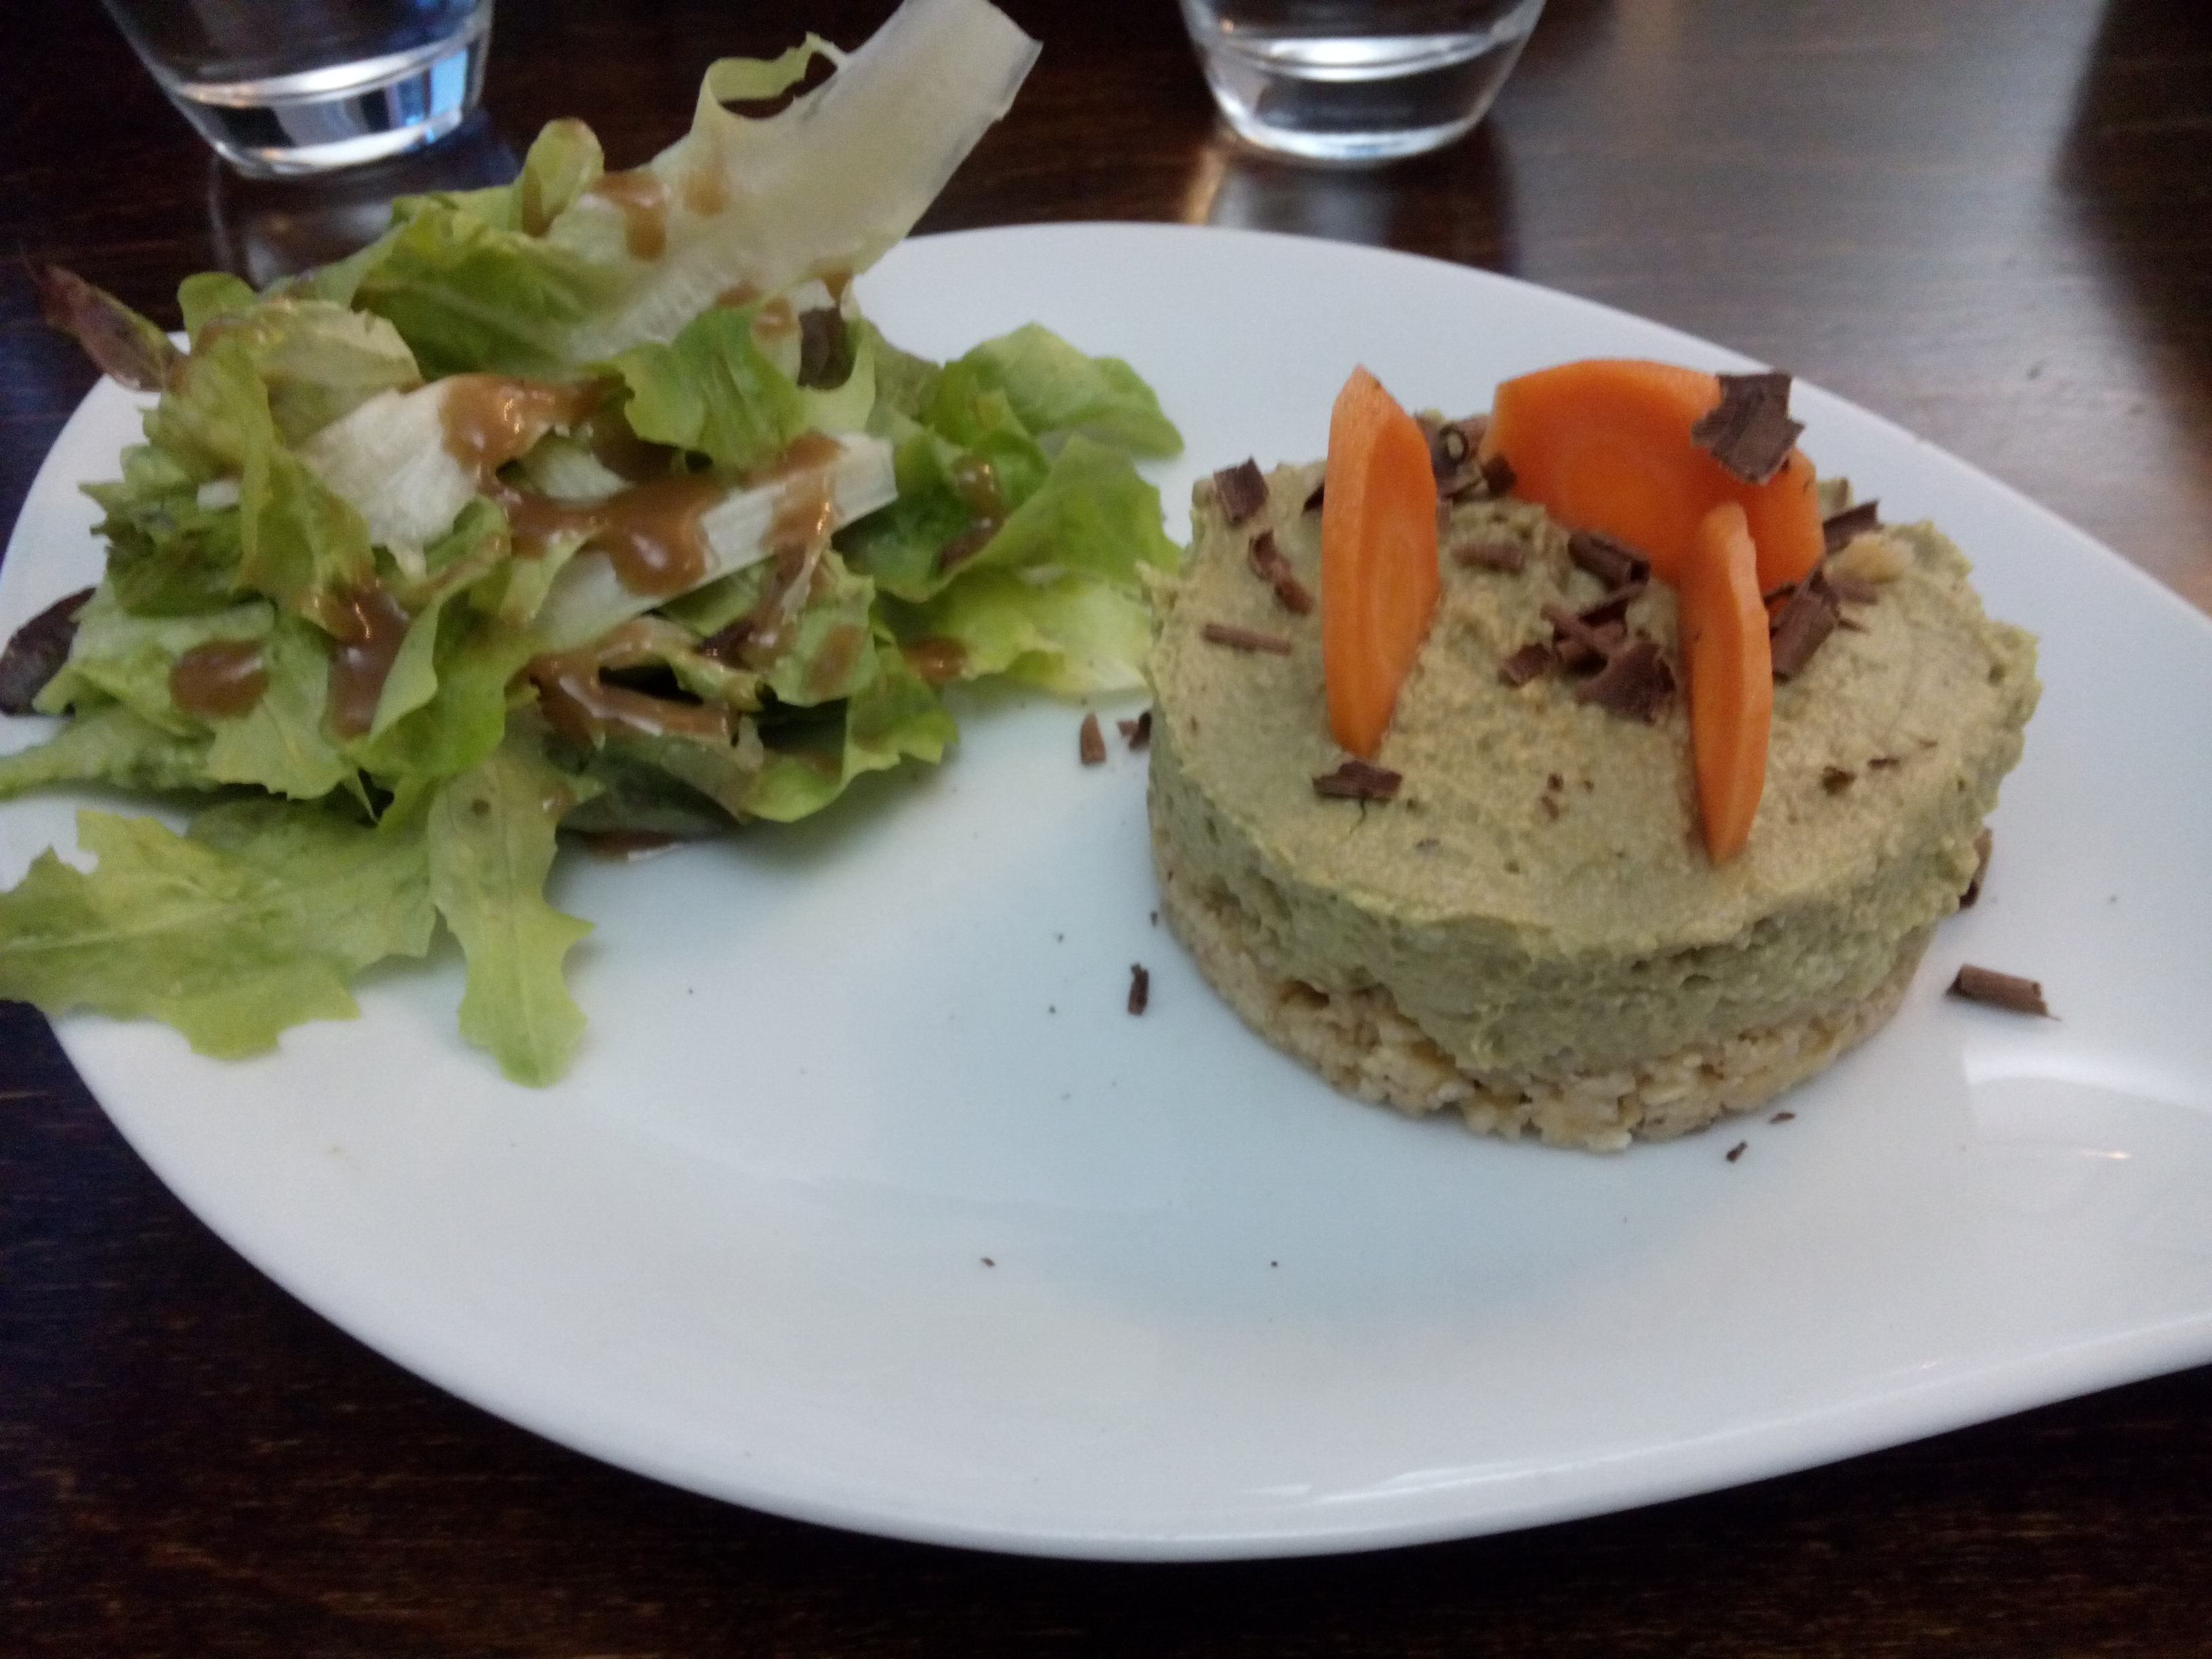 A white plate with salad on left and a round stack of avocado with some carrot and chocolate shreds on top